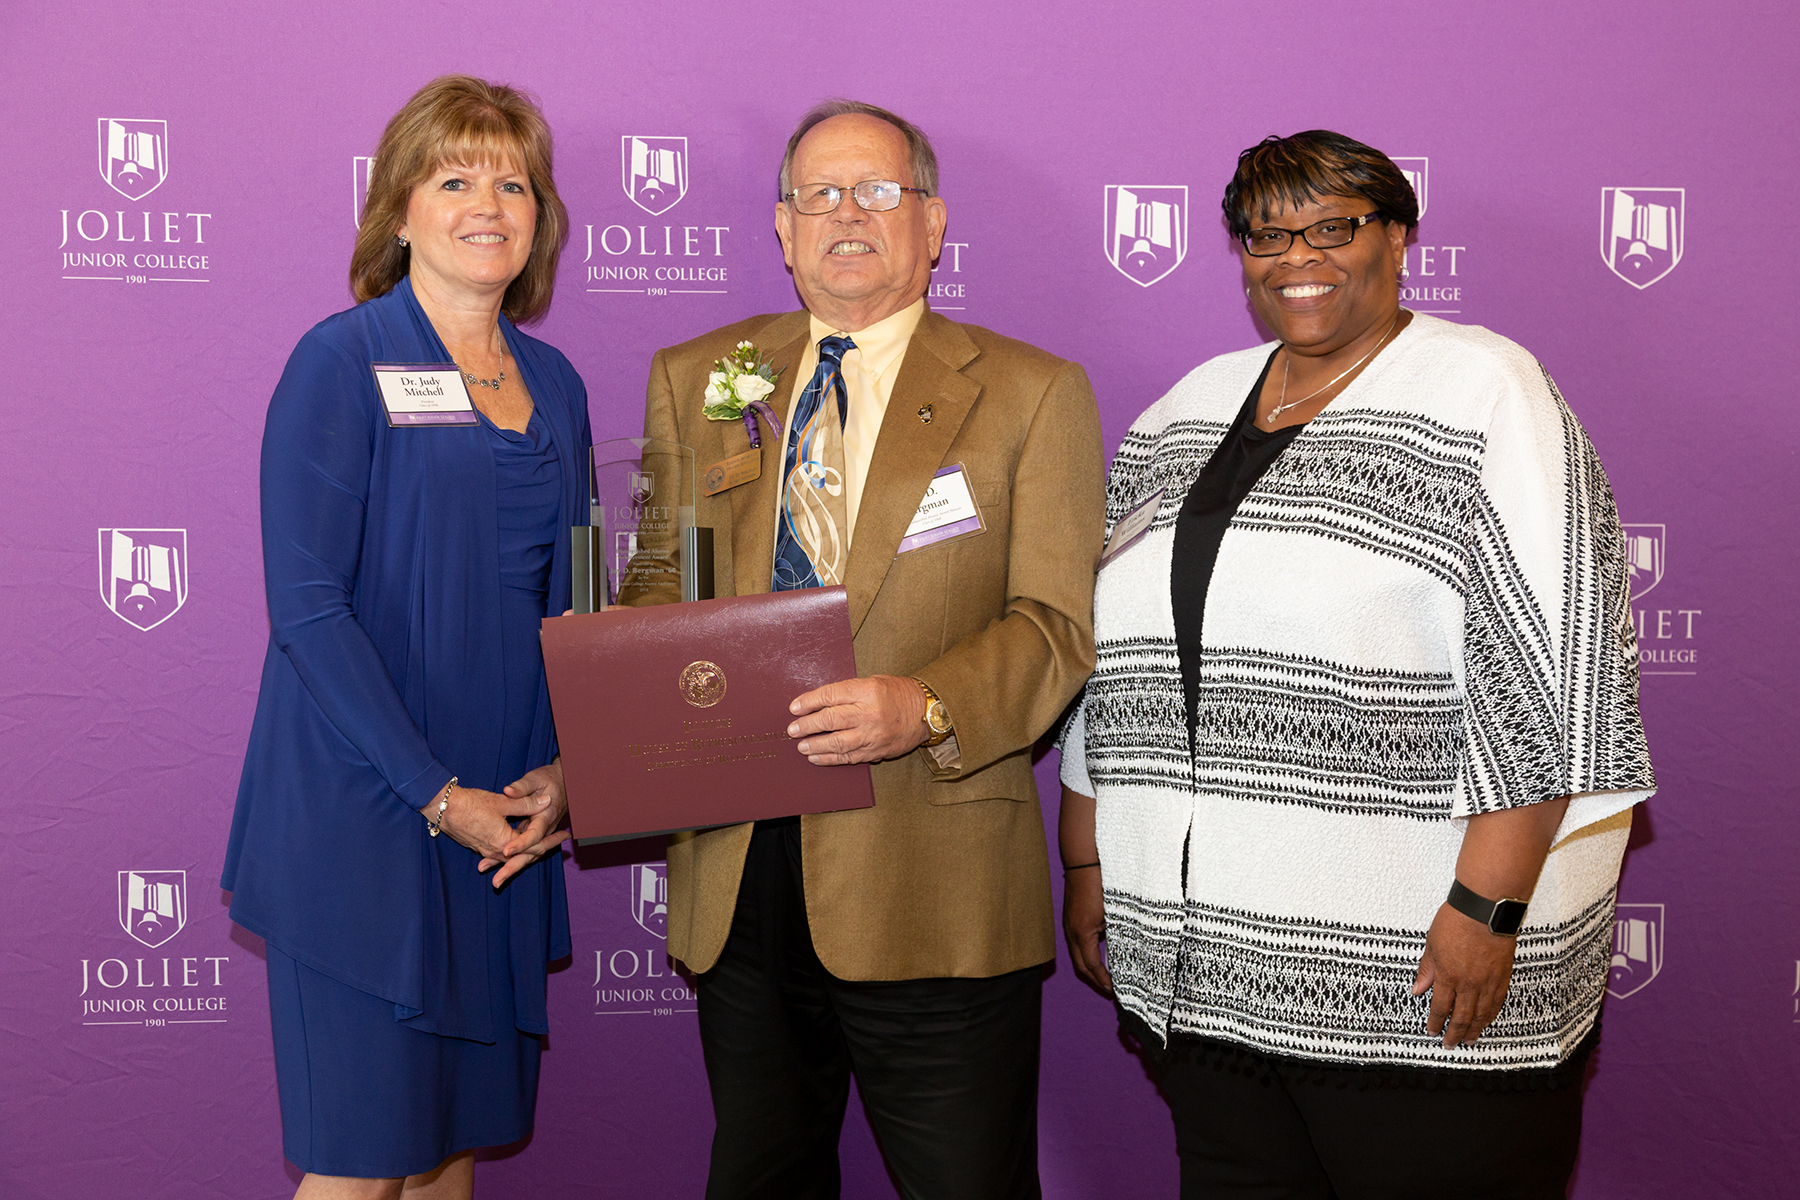 From left: JJC President Dr. Judy Mitchell, Jay Bergman (Distinguished Alumni Achievement Award recipient), Alumni Board President Ericka Williams.